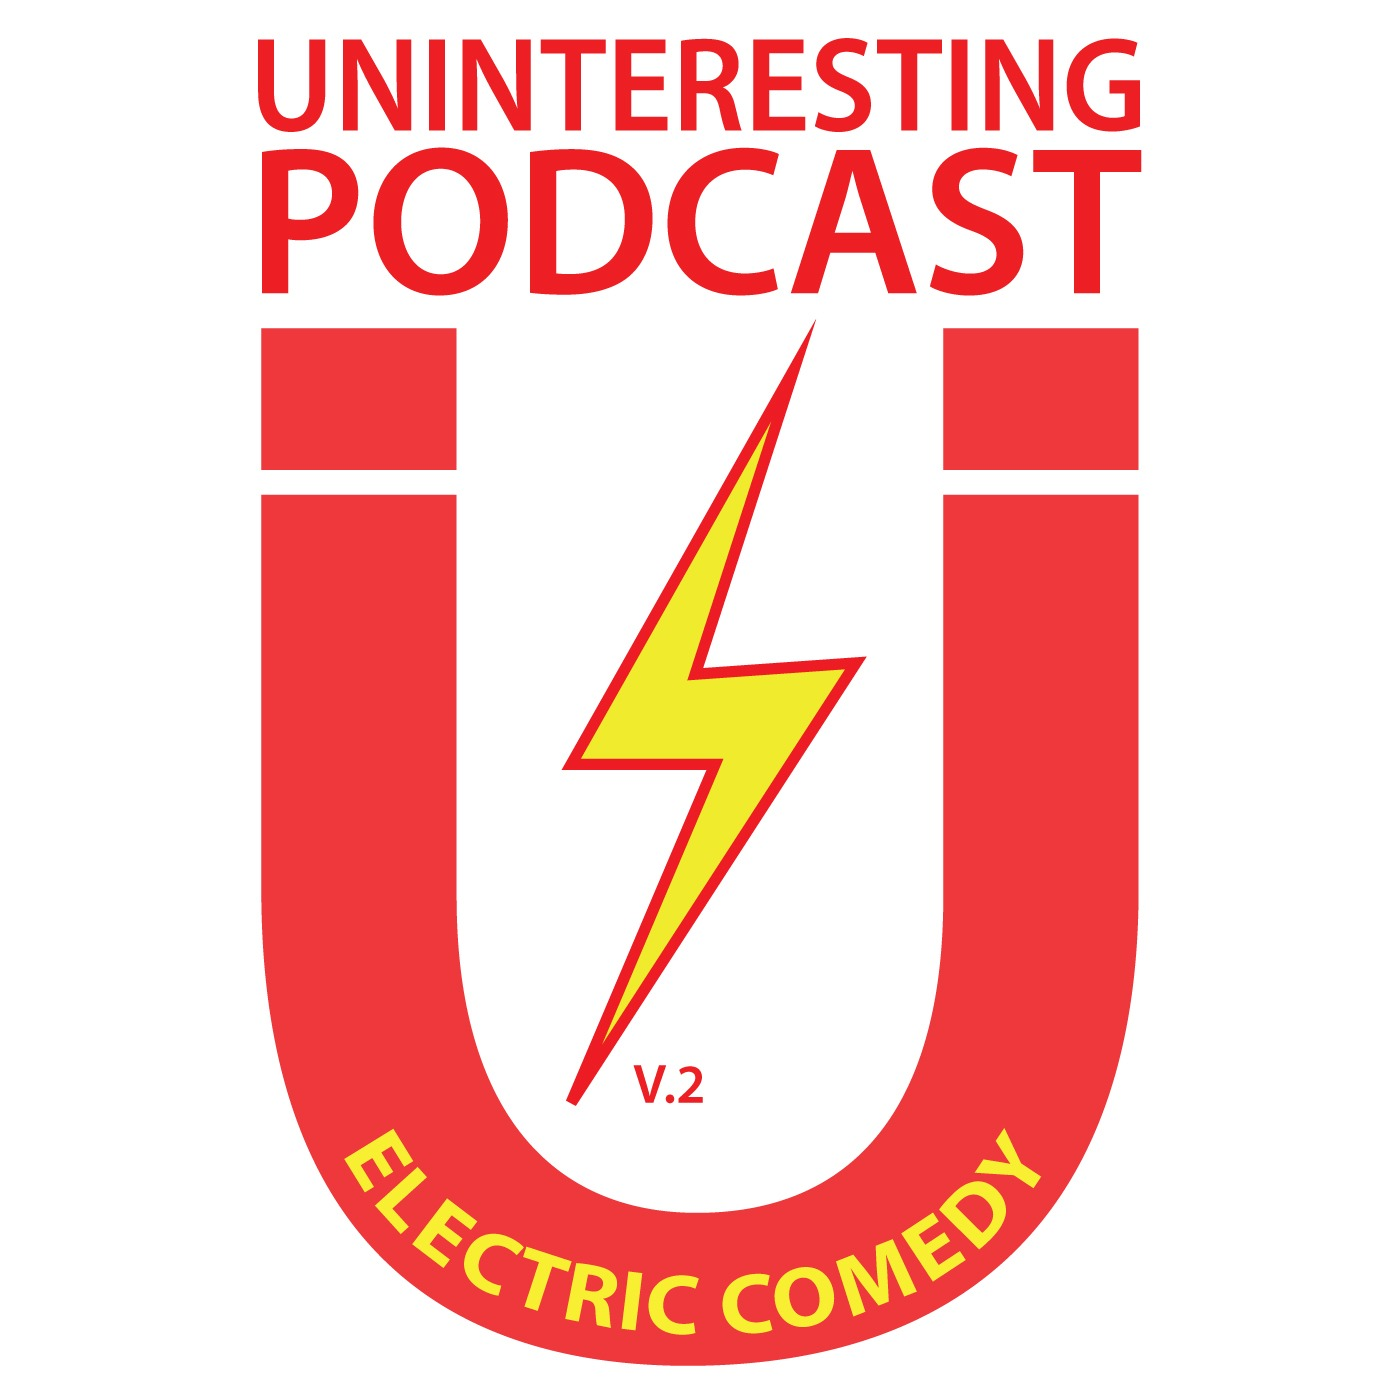 Matt & Eric's Uninteresting Podcast